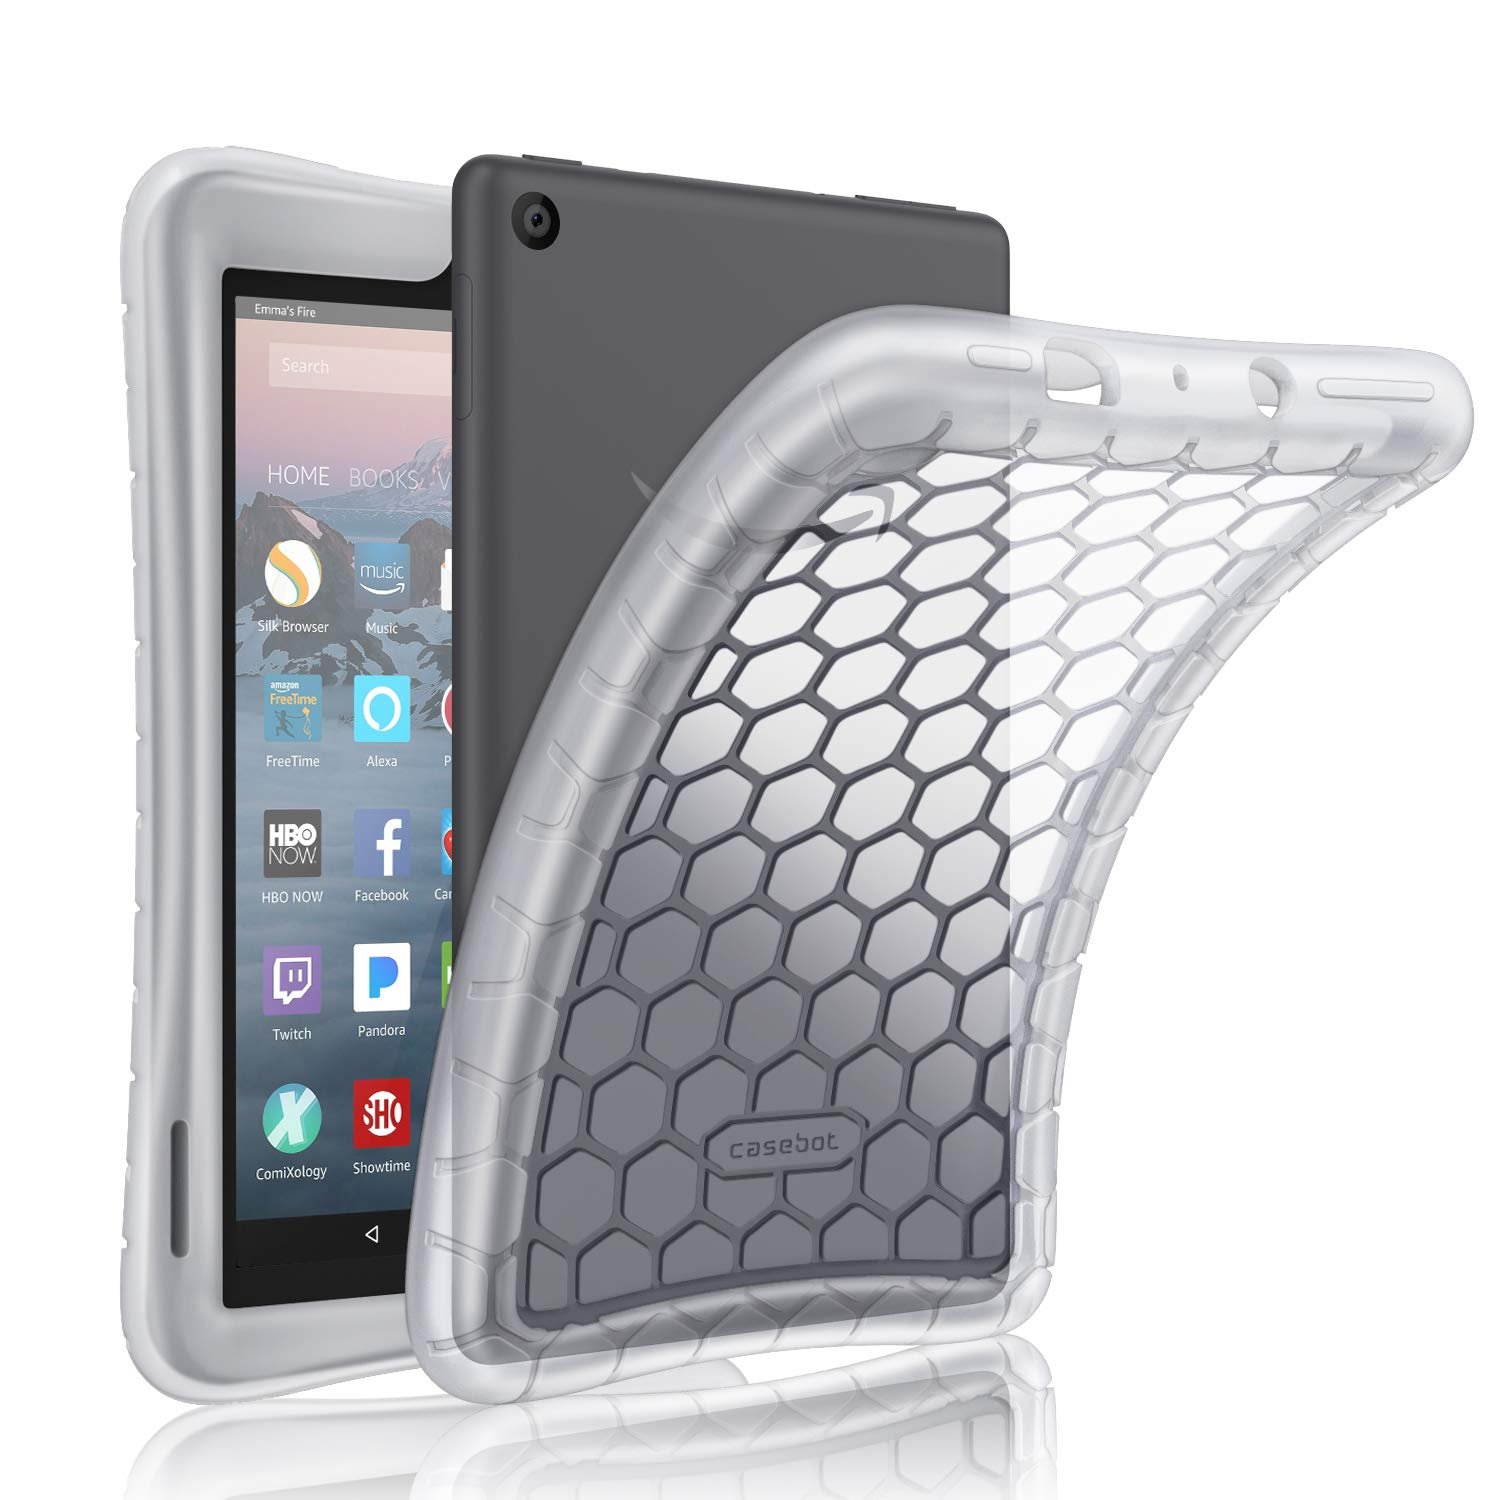 Fintie Silicone Case for All-New Amazon Fire 7 Tablet (9th Generation, 2019 Release) - [Honey Comb Series] [Kids Friendly] Light Weight [Anti Slip] Shock Proof Protective Cover, Clear White